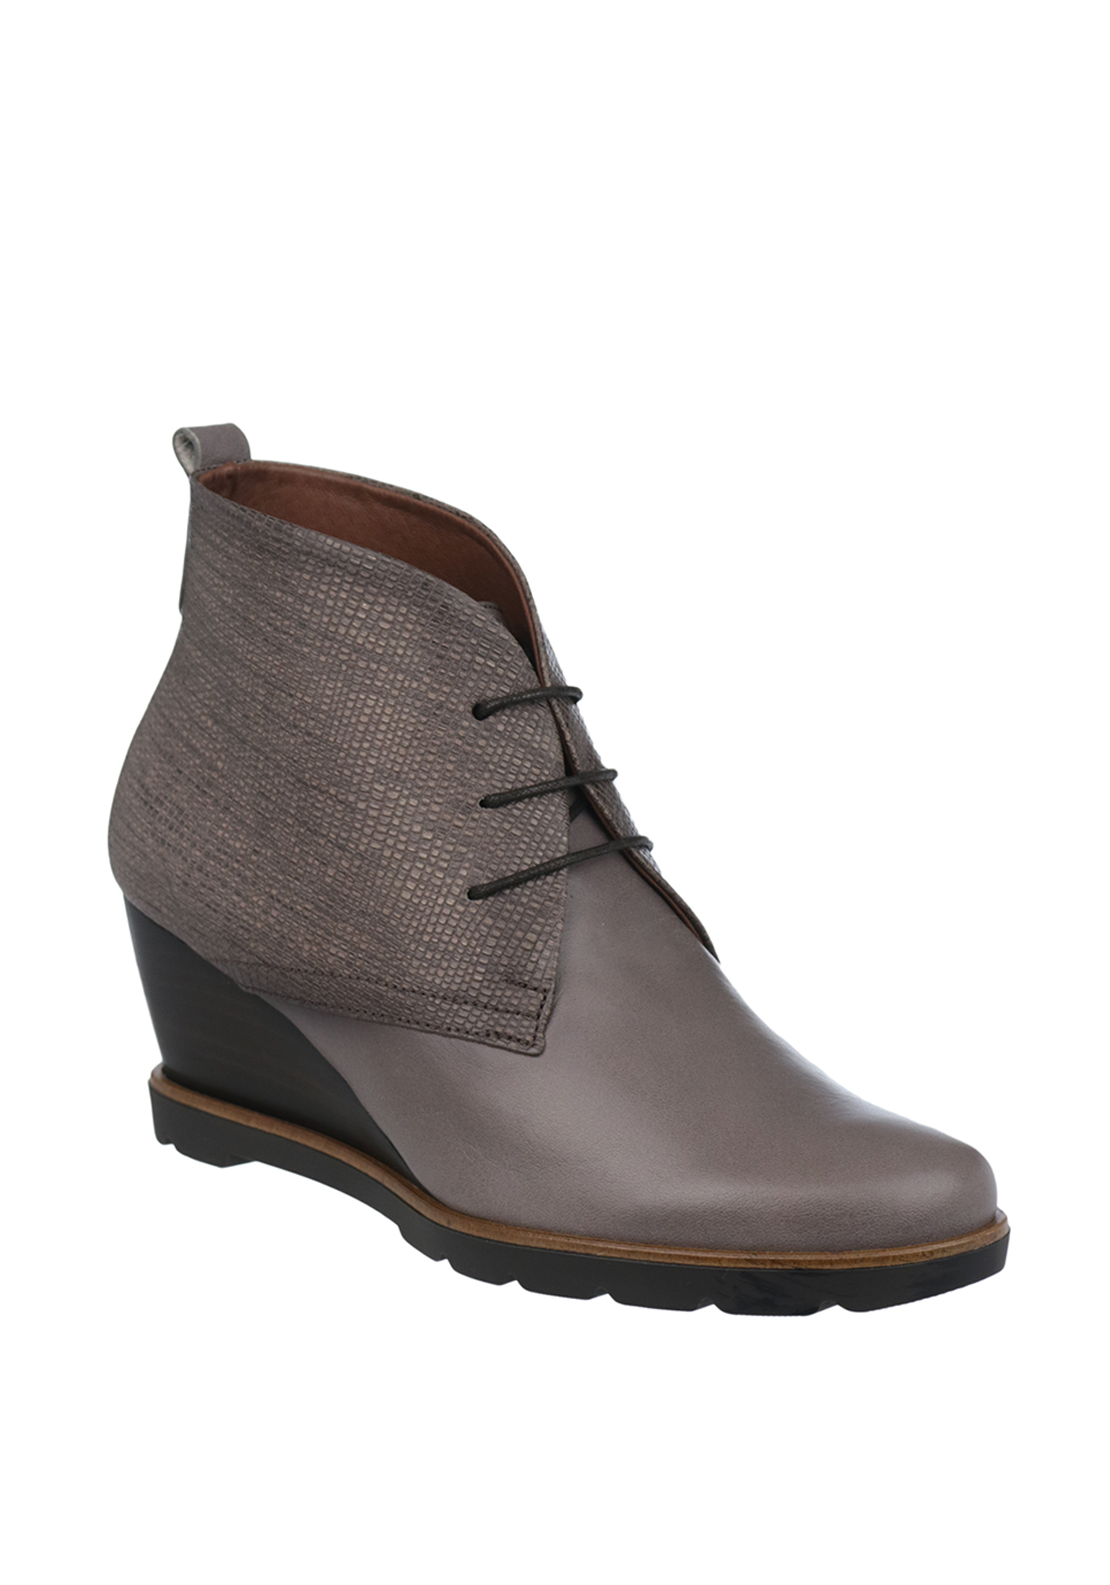 Hispanitas Leather Reptile Laced Wedged Dessert Boots, Grey